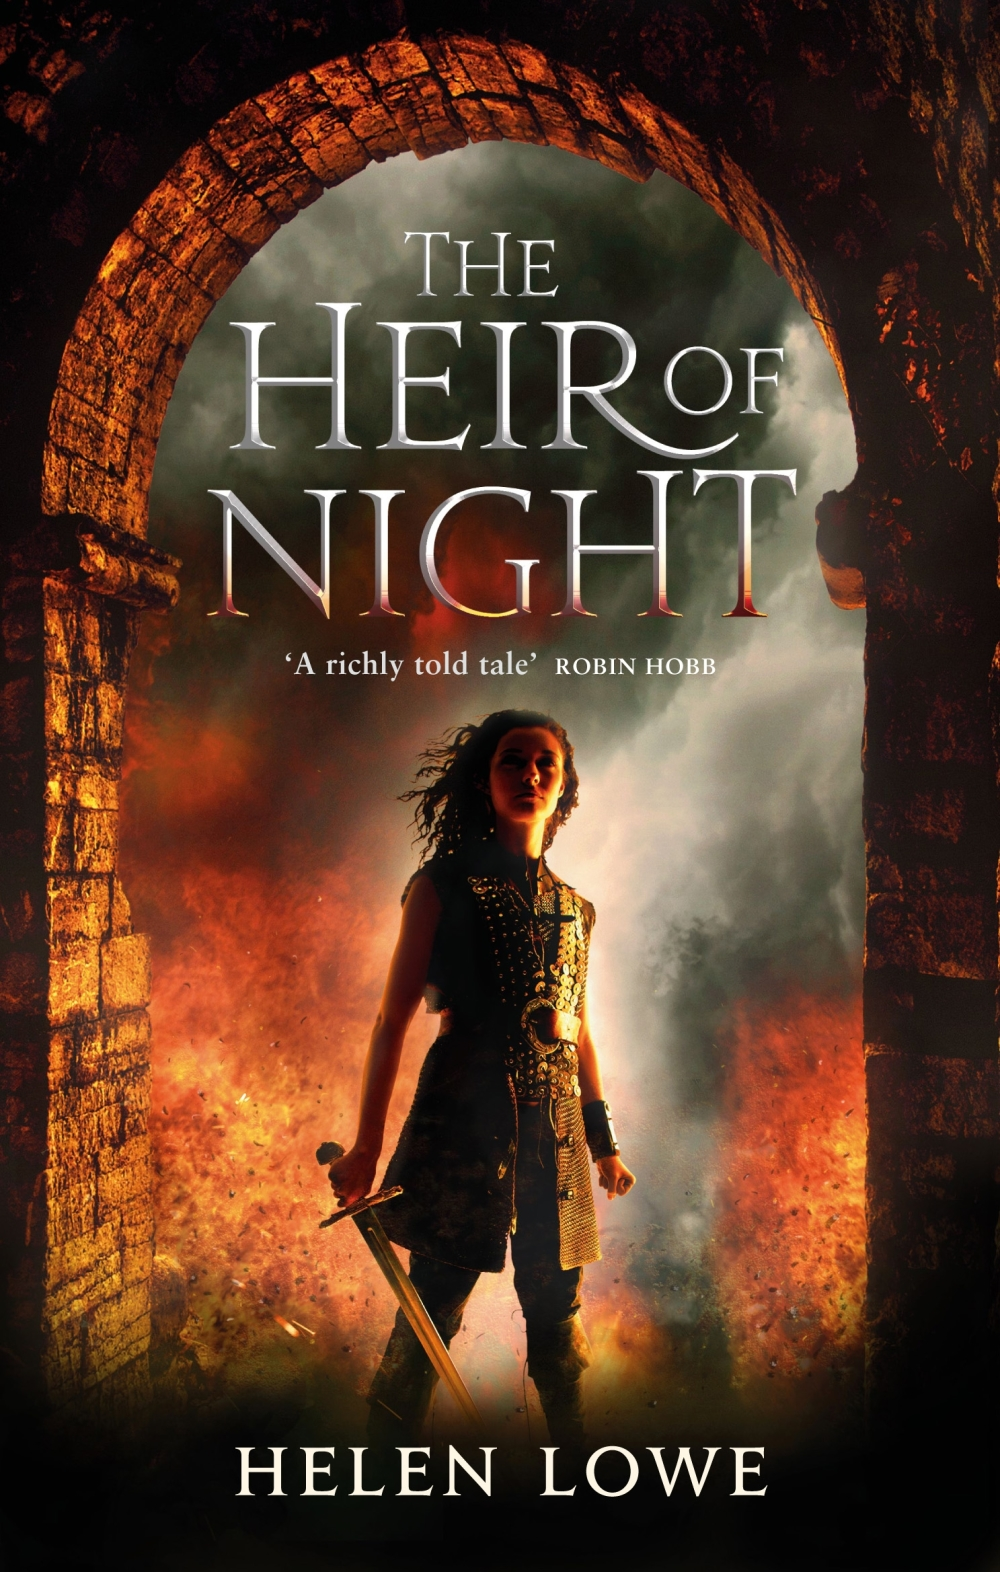 Book Cover Fantasy ~ Heirofnight